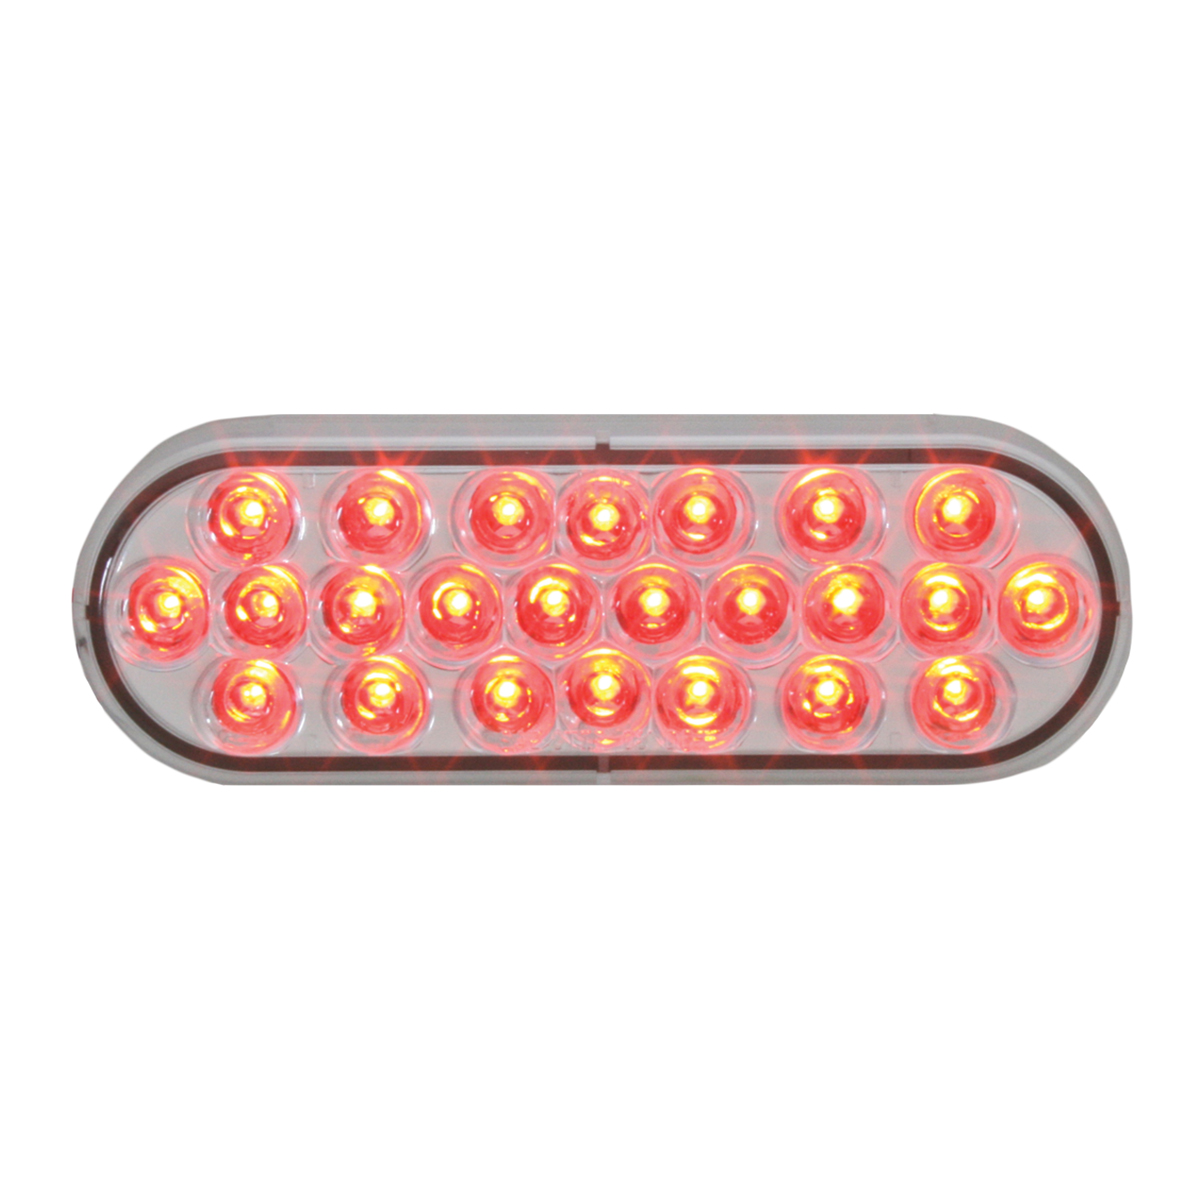 78234 Oval Pearl LED Light in Red/Clear